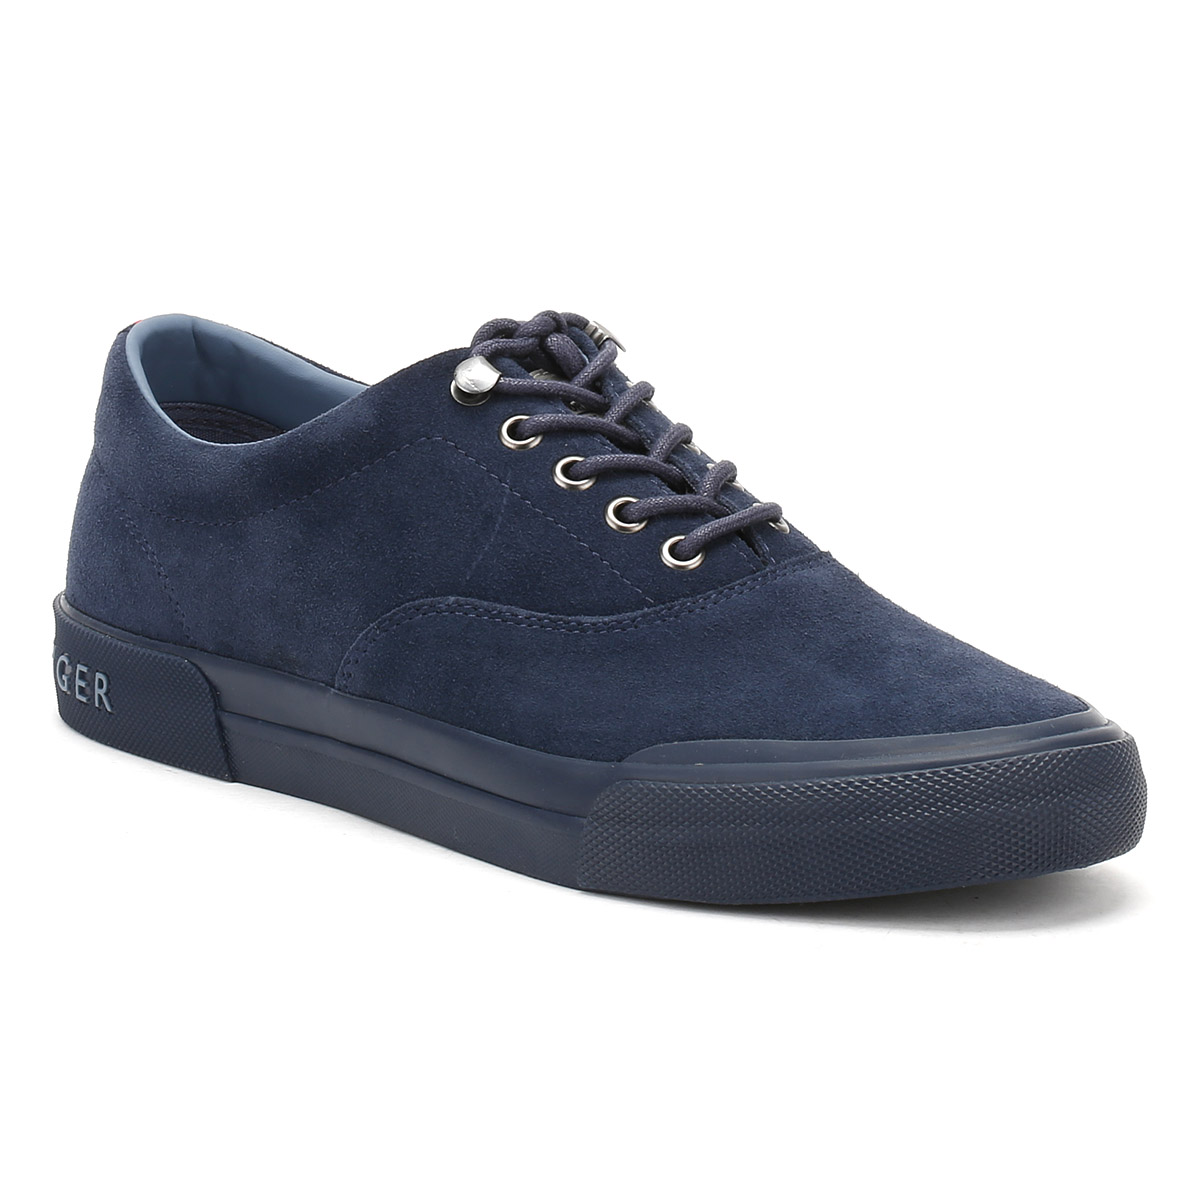 Tommy Hilfiger Mens Navy Blue Suede Trainers Lace Up Sport ...